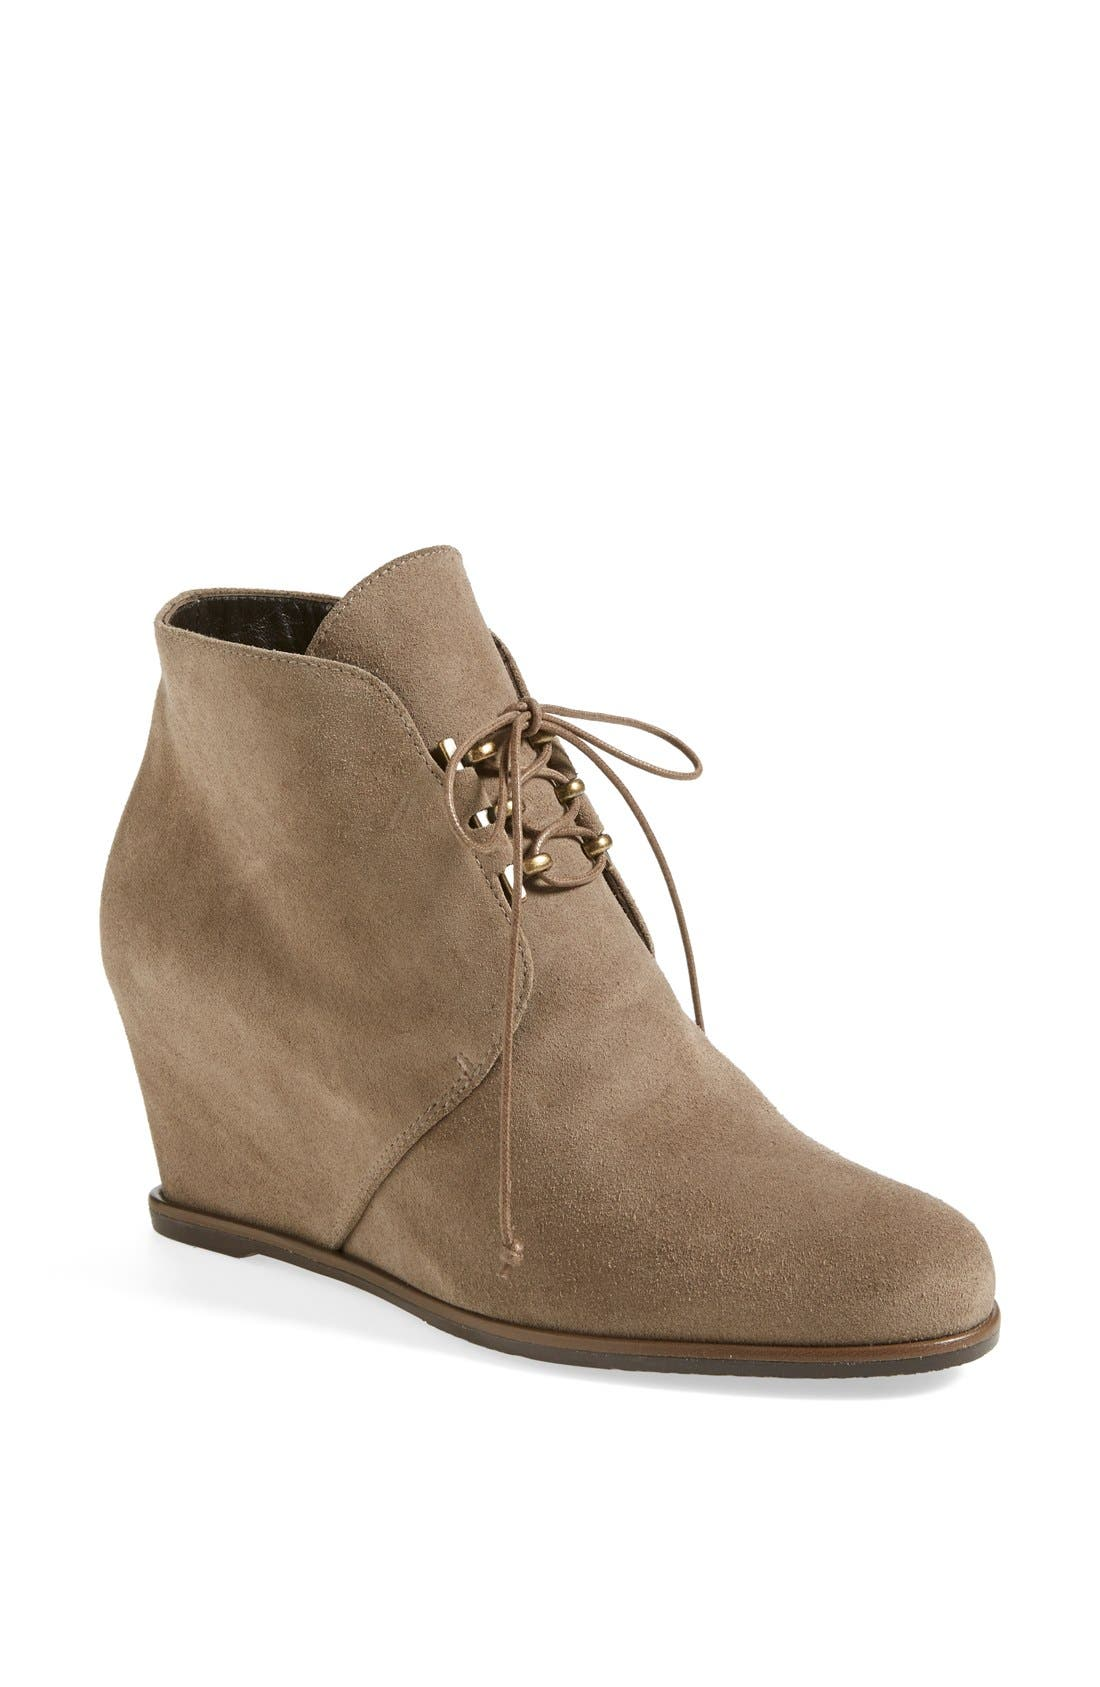 Alternate Image 1 Selected - Stuart Weitzman 'Comfort' Wedge Boot (Nordstrom Exclusive) (Women)